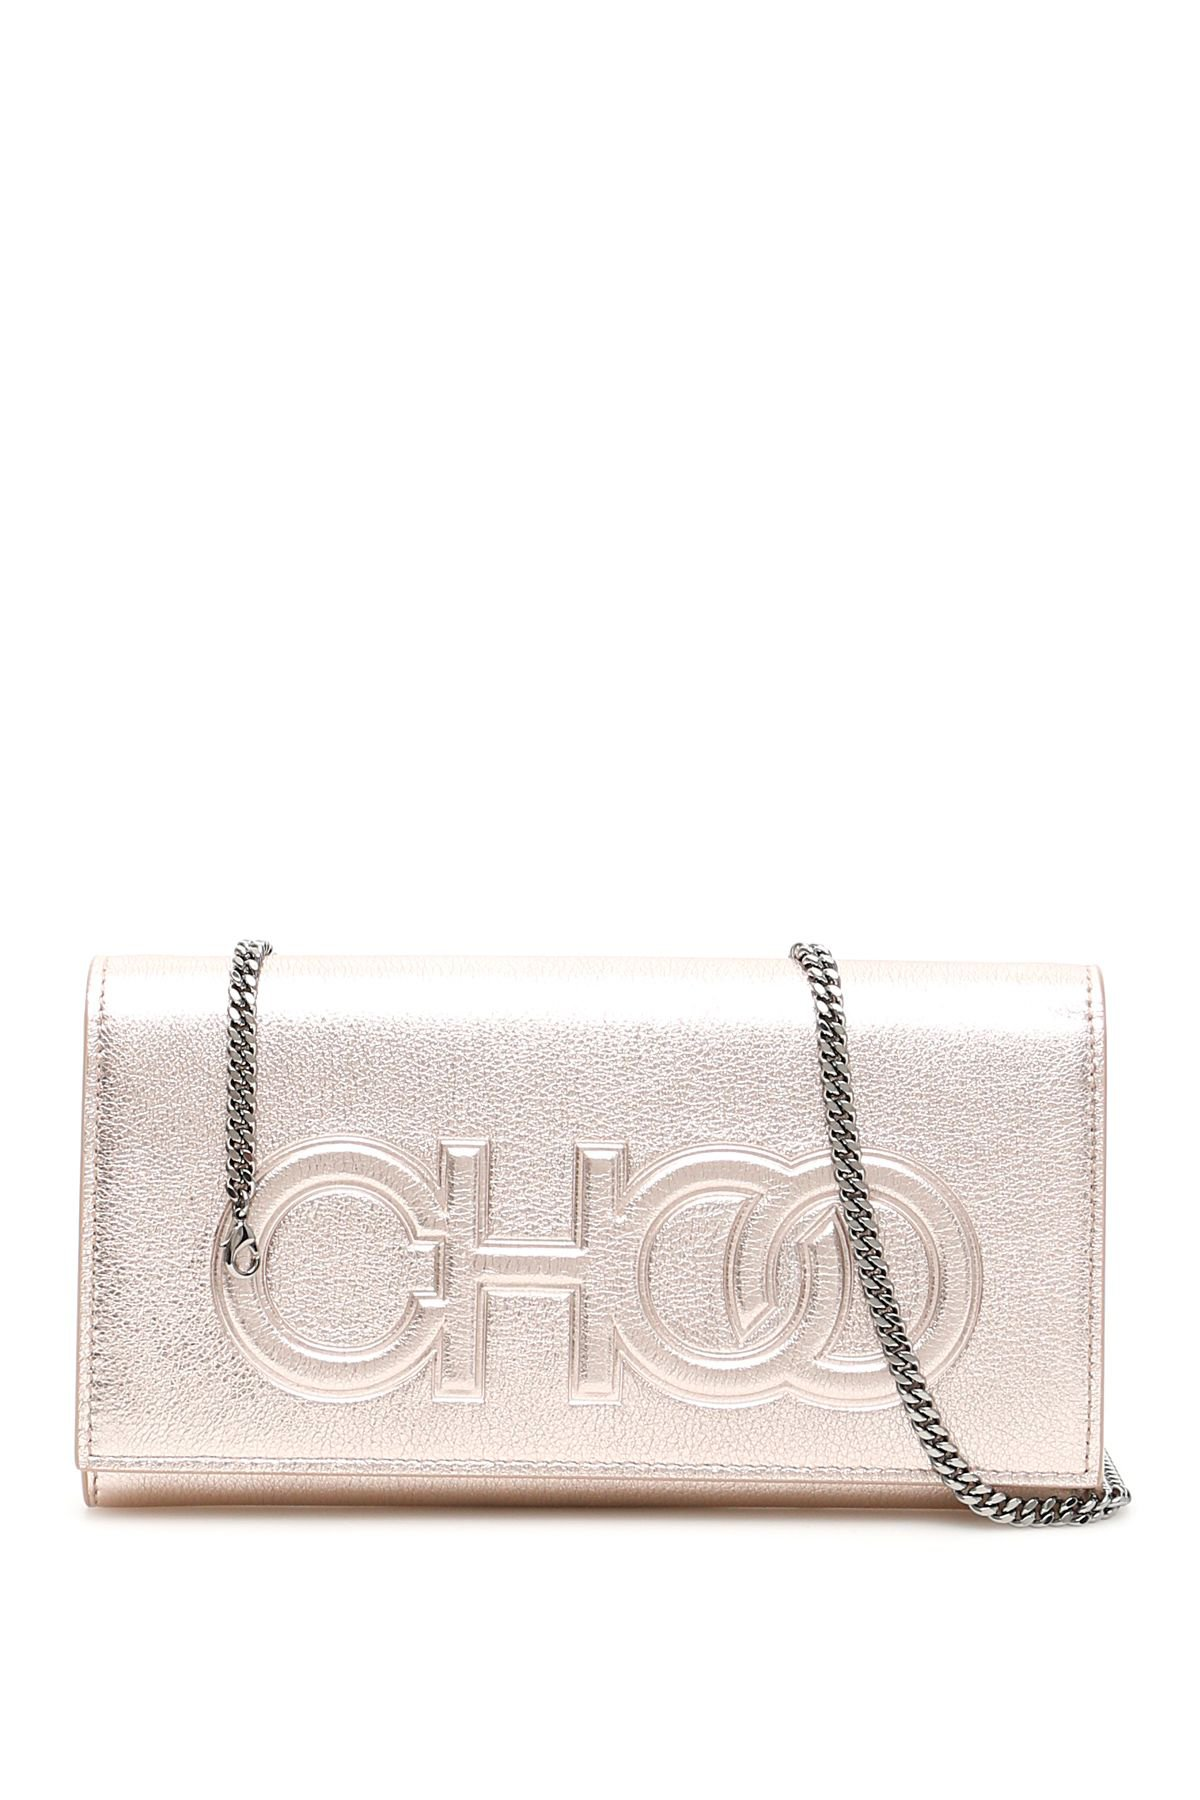 Jimmy Choo Santini Clutch